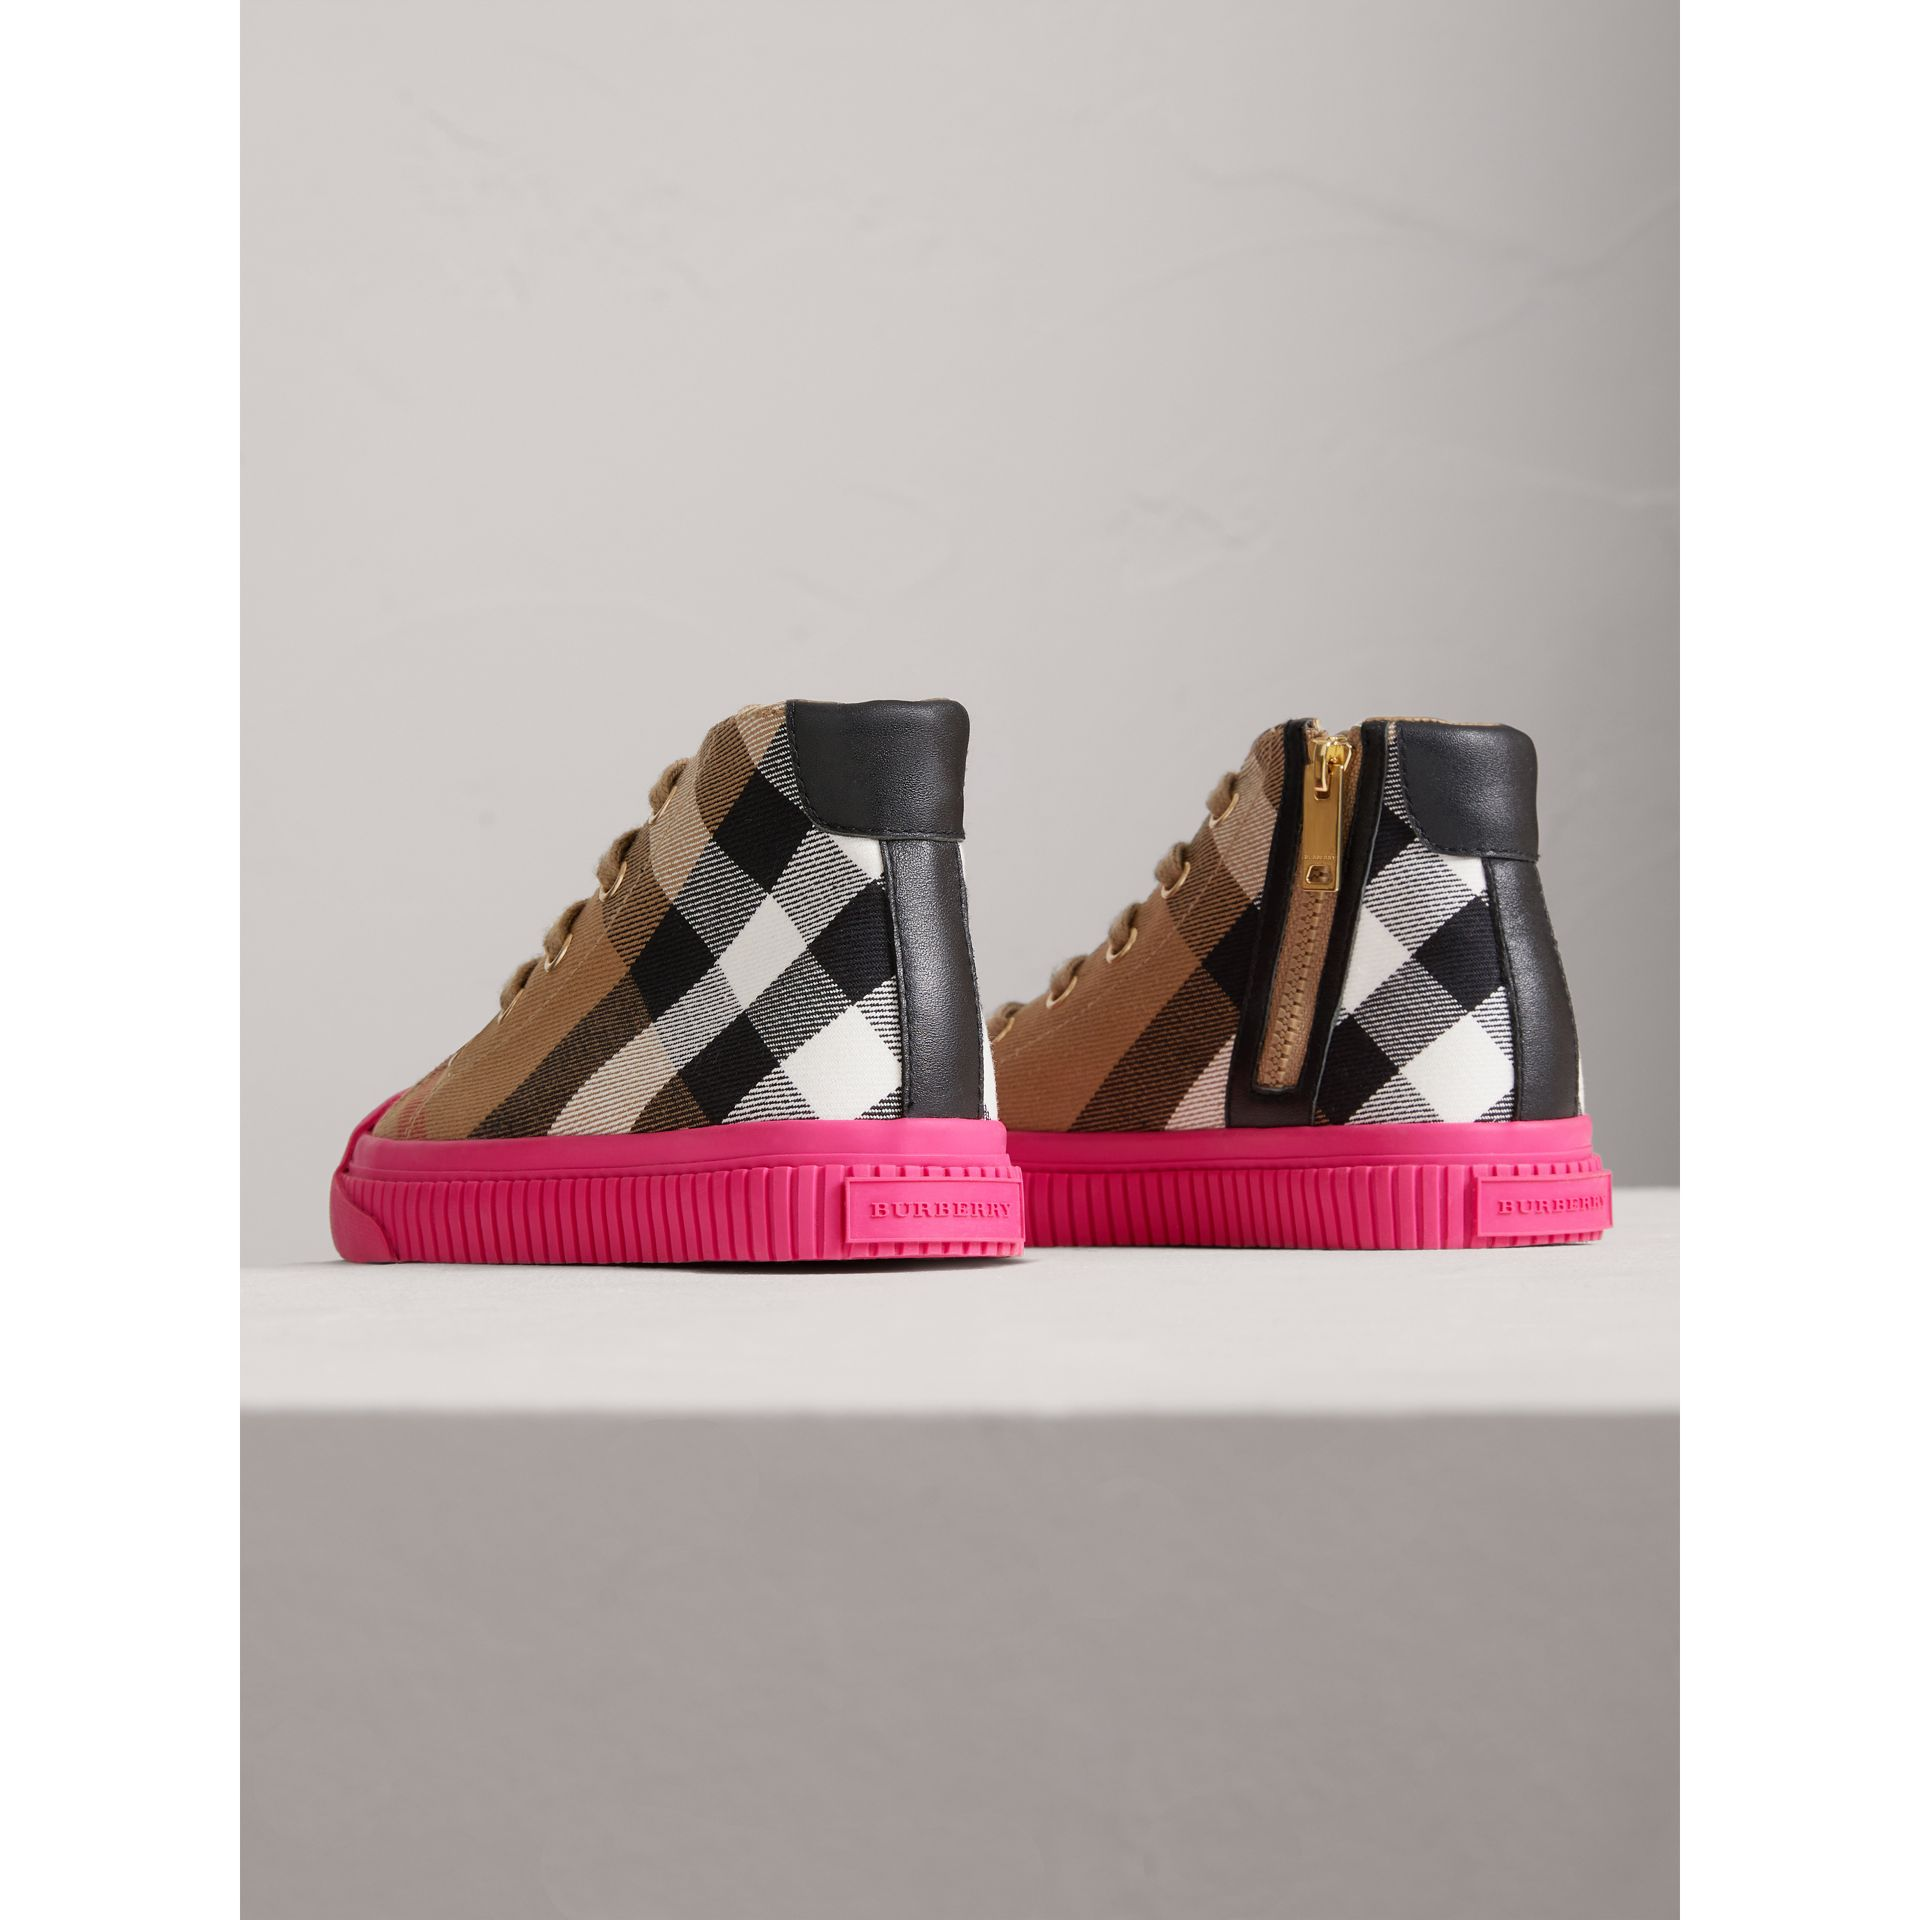 House Check and Leather High-top Sneakers in Classic/neon Pink | Burberry United Kingdom - gallery image 2